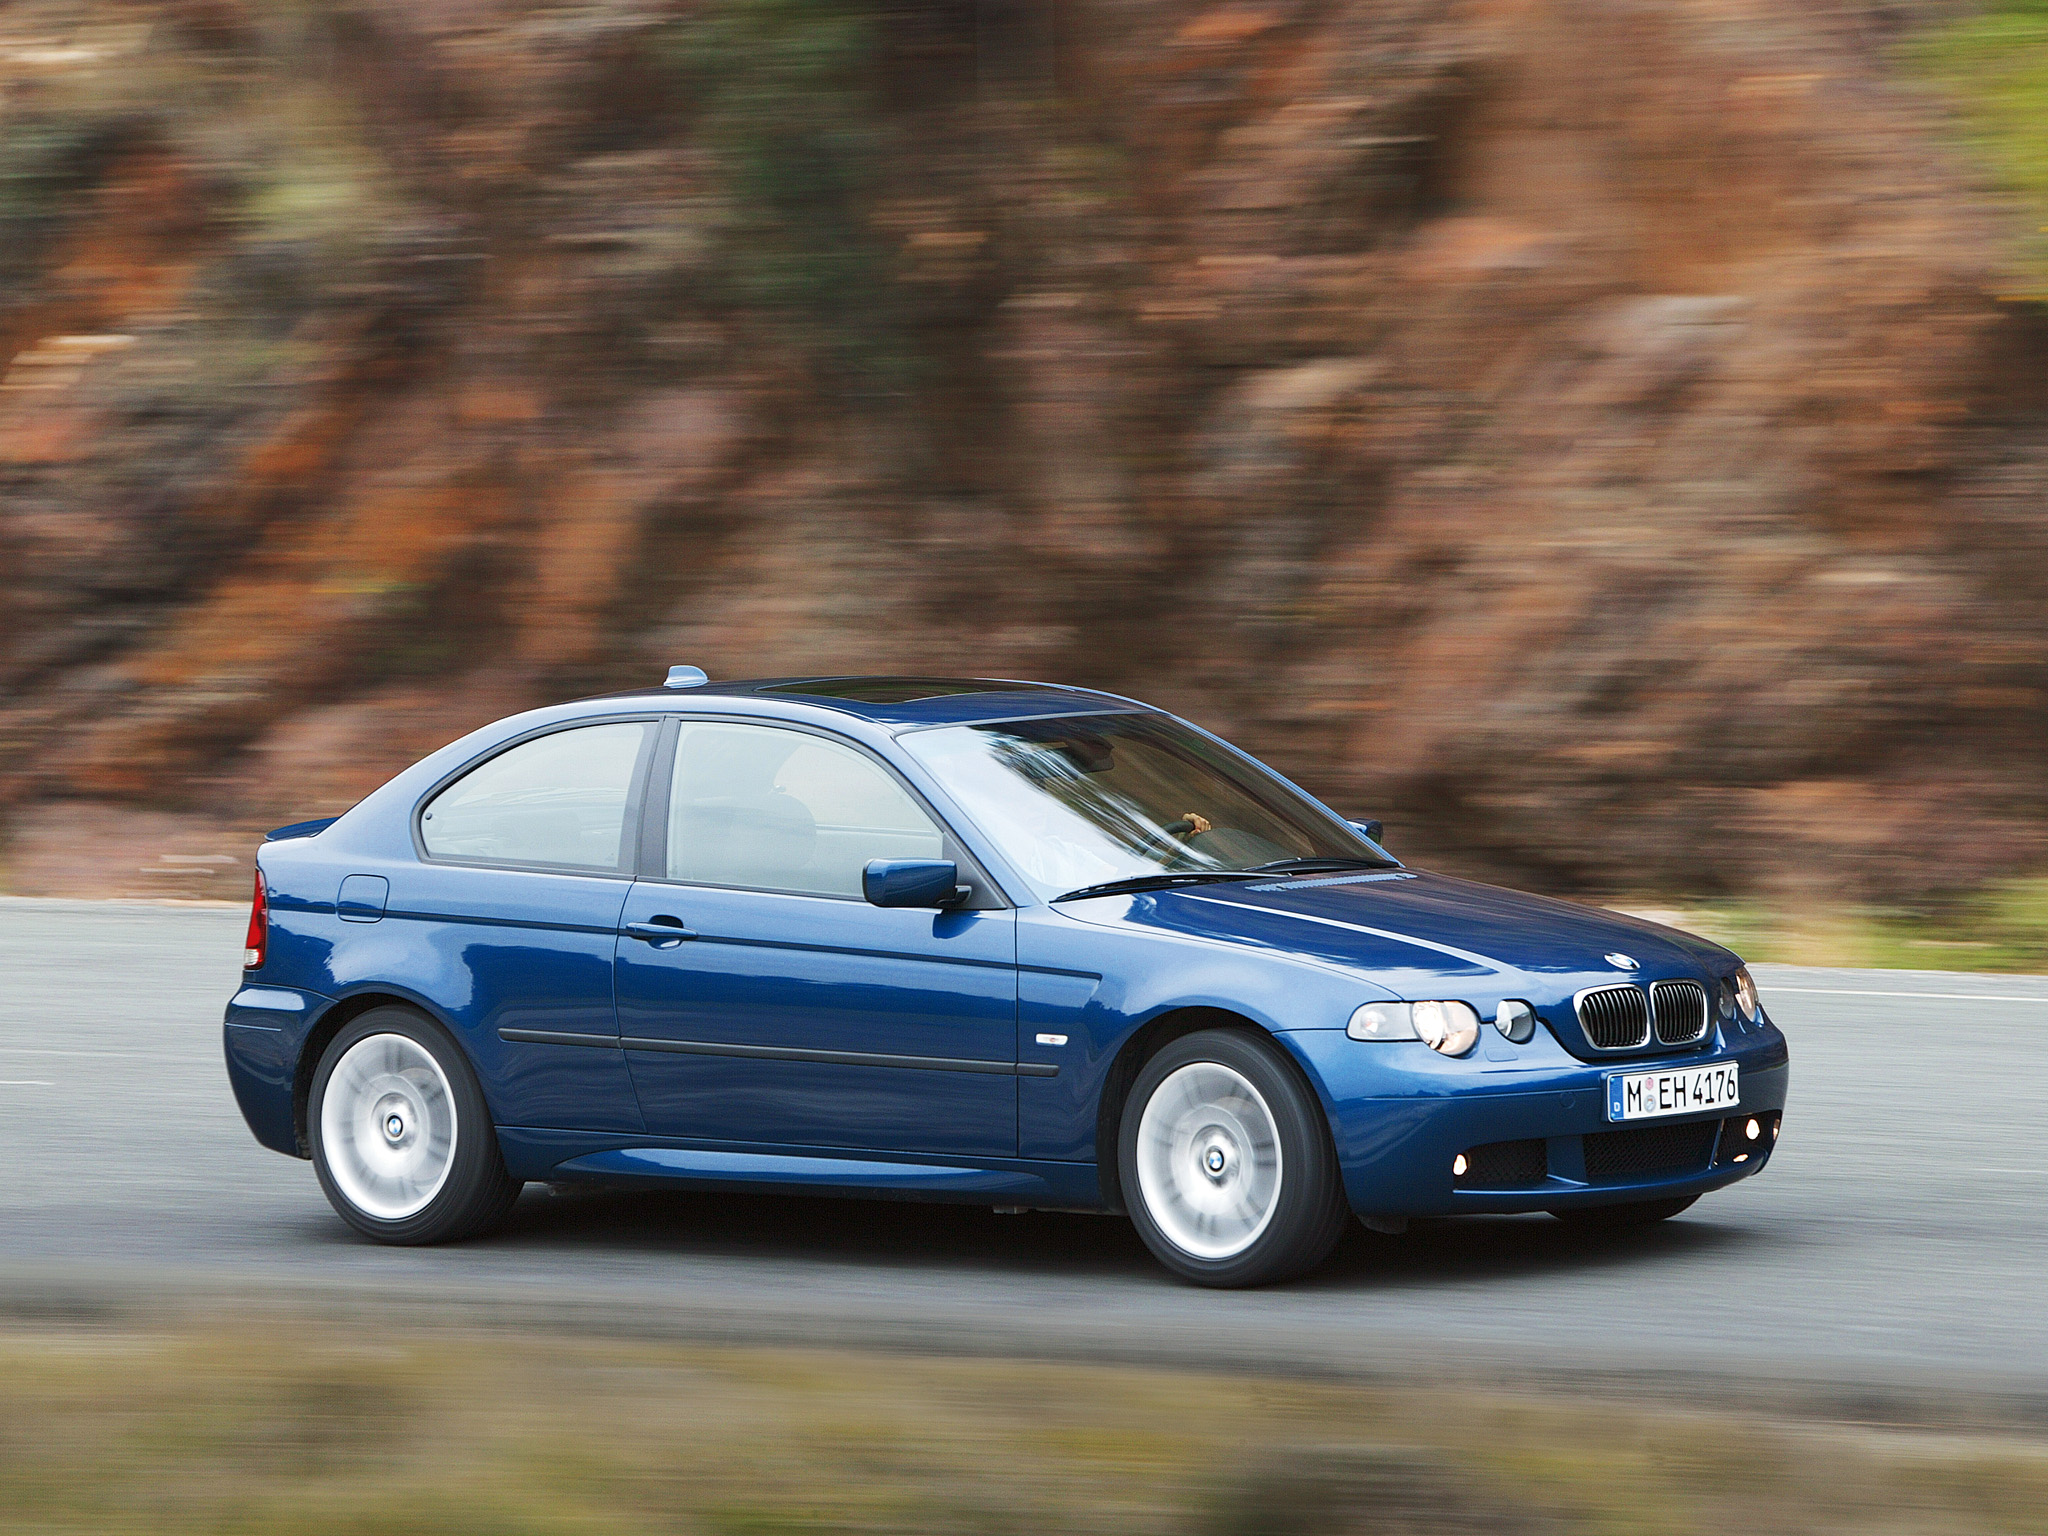 BMW 3 series 325ti 2001 photo - 4